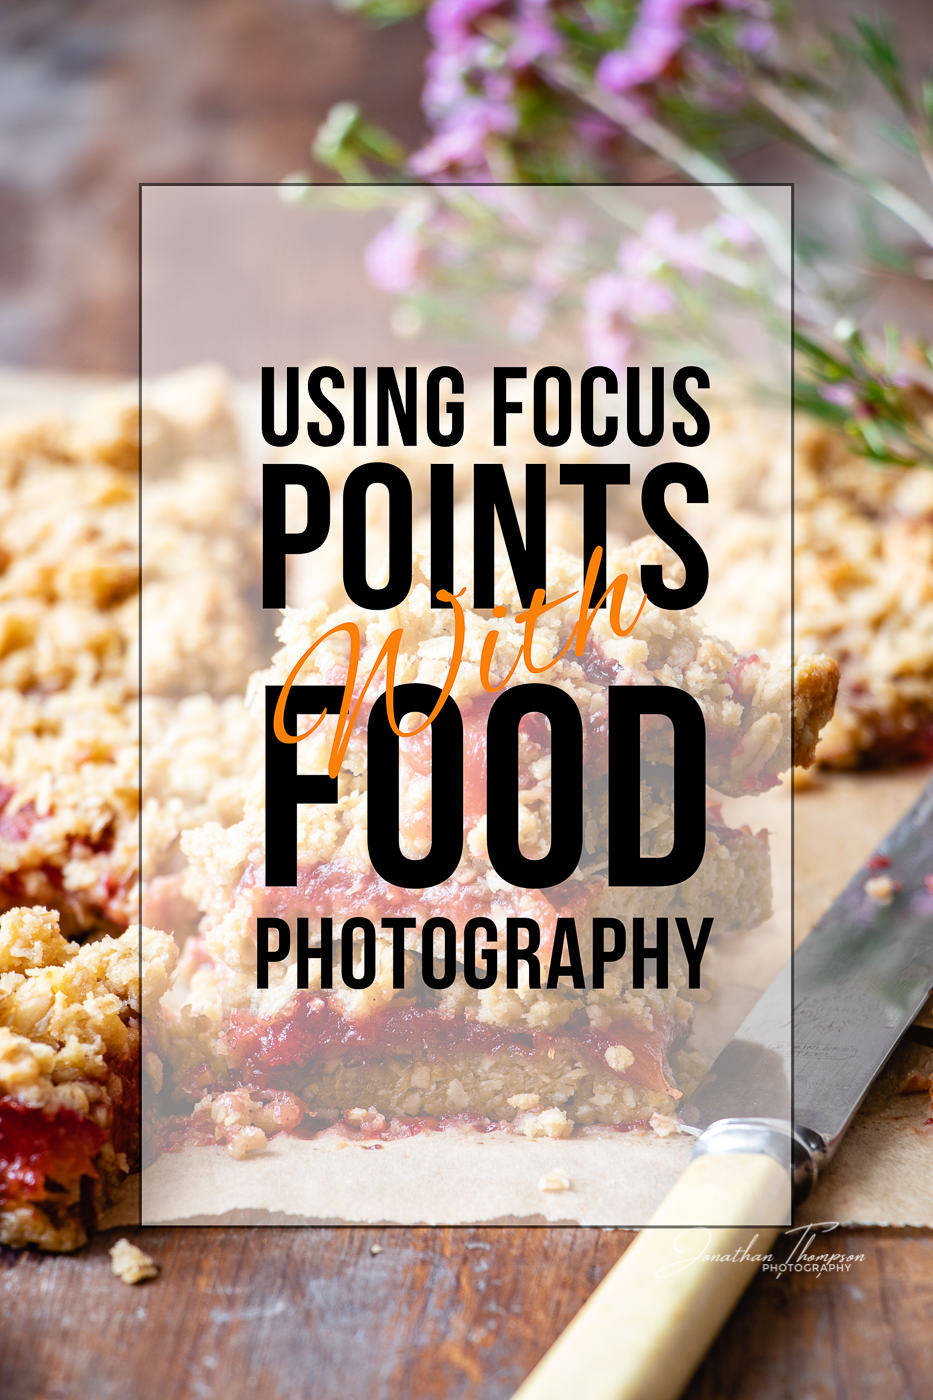 A fruit crumble bar photograph with overlayed text saying Using Focus points With Food Photography